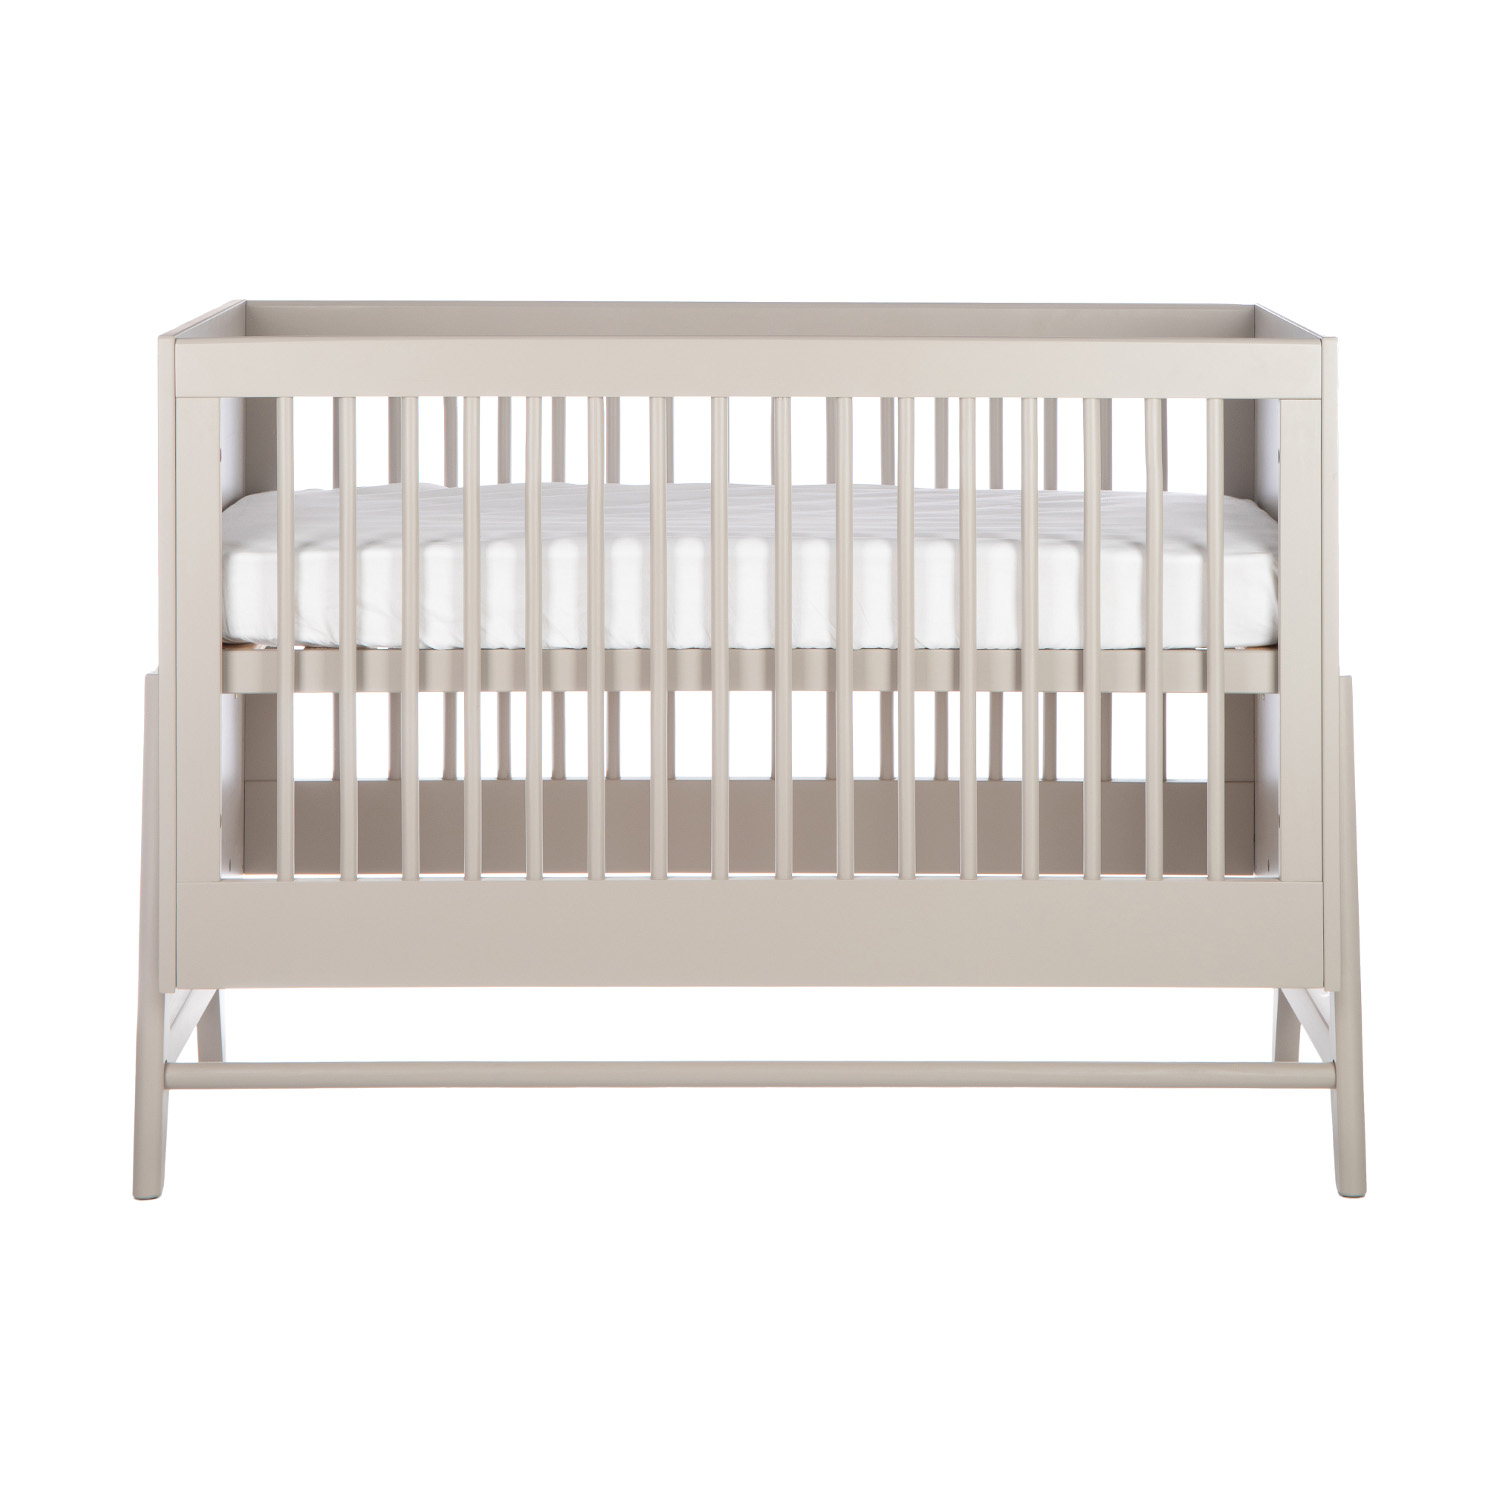 Coming Kids Mell Babybed Beige 60 x 120 cm